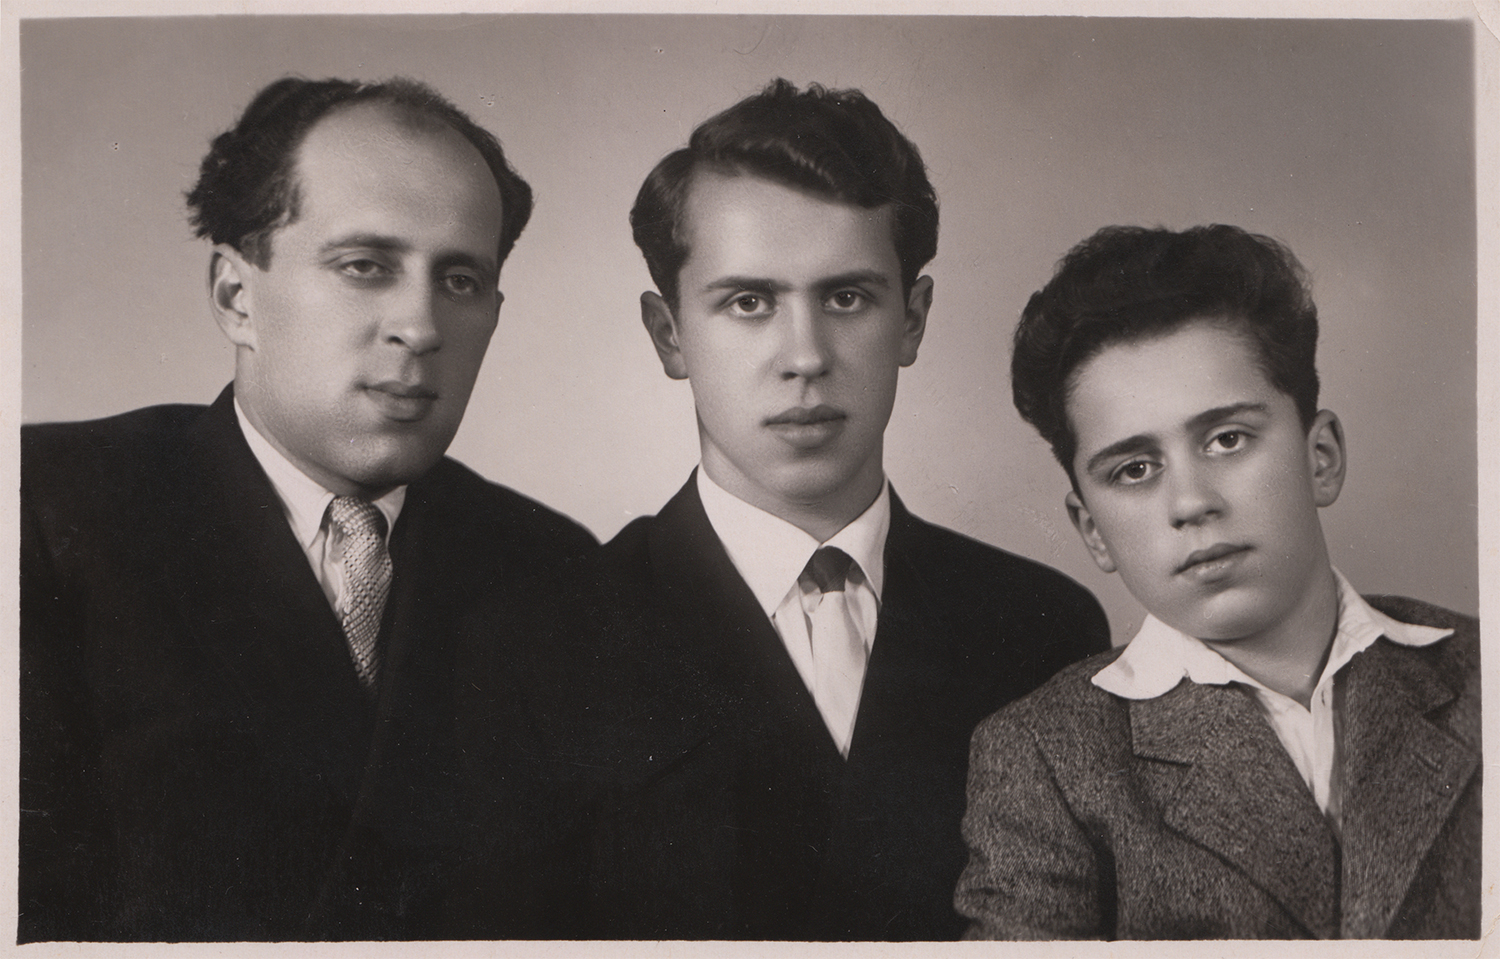 Moisey Melamed's sons: Isaac, Boris, and Savely. March, 1960